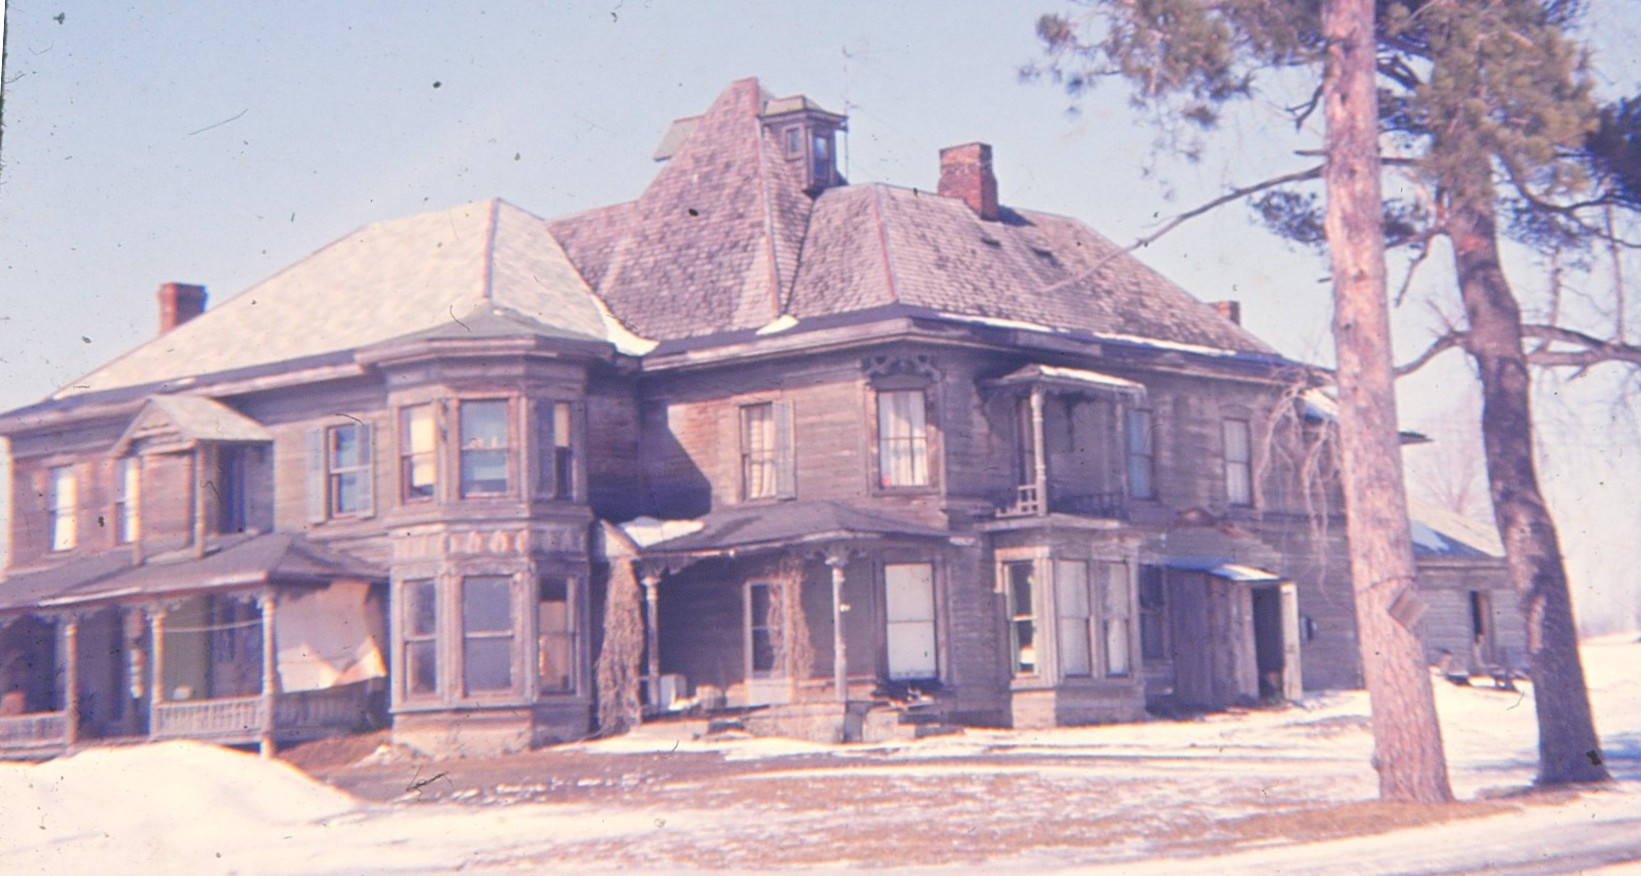 The earliest known photo of the old Barber House, 1960. [IMAGE: Roy Gath, courtesy of Nunda Historical Society]